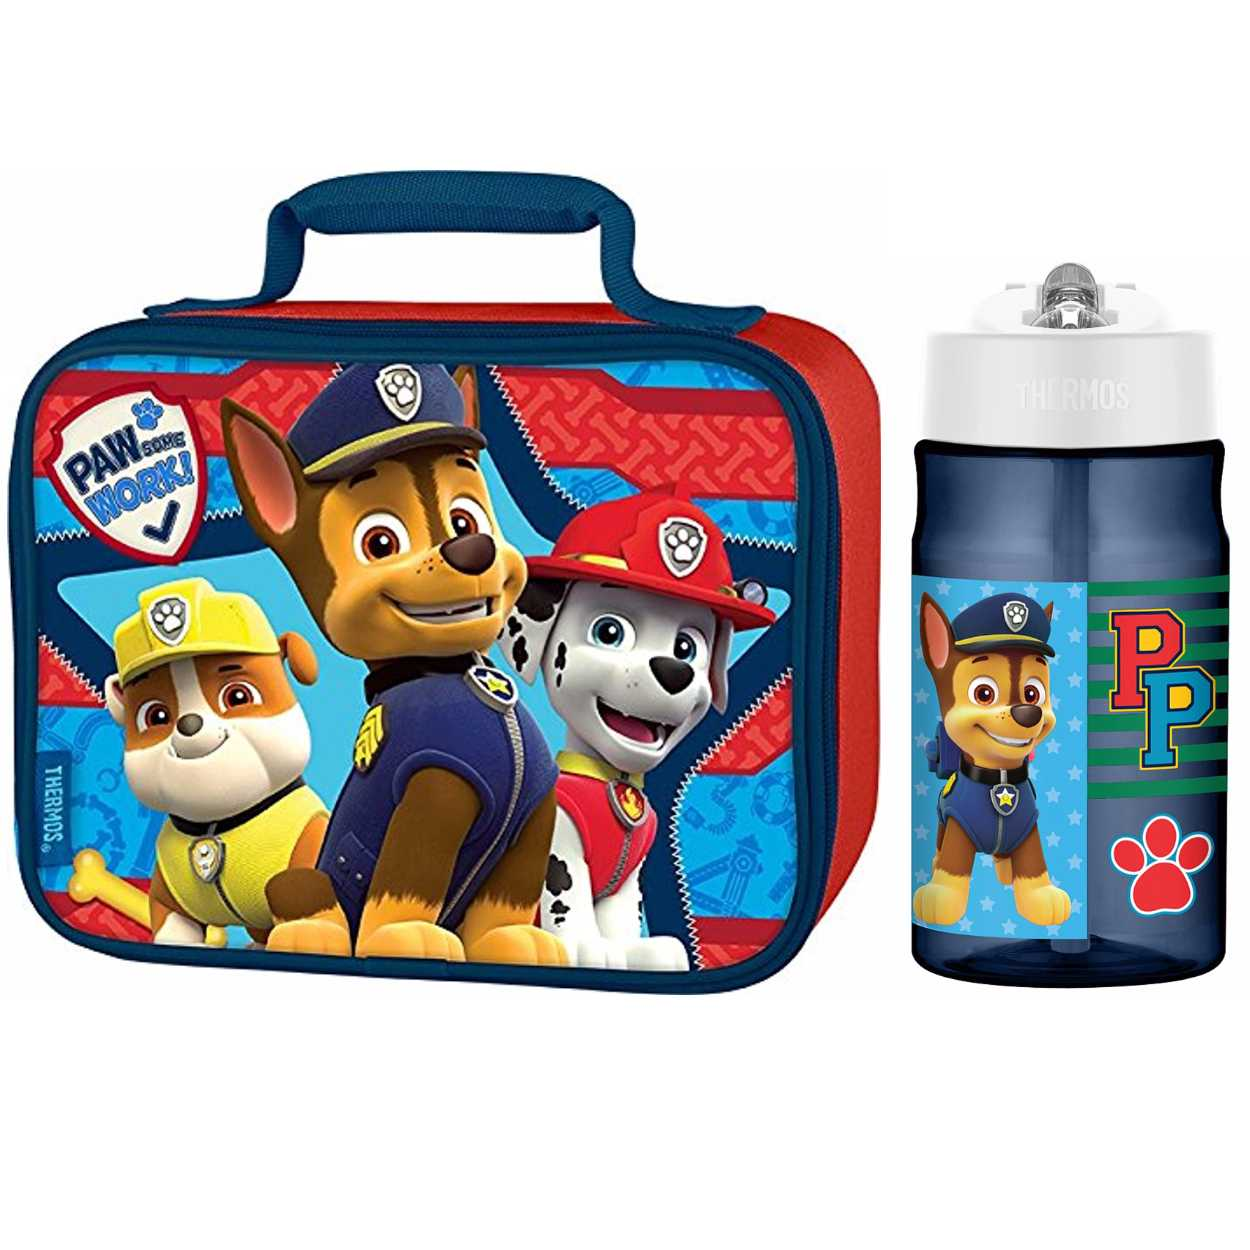 Thermos Paw Patrol 12 Oz Water Bottle w/ Soft Lunch Bag